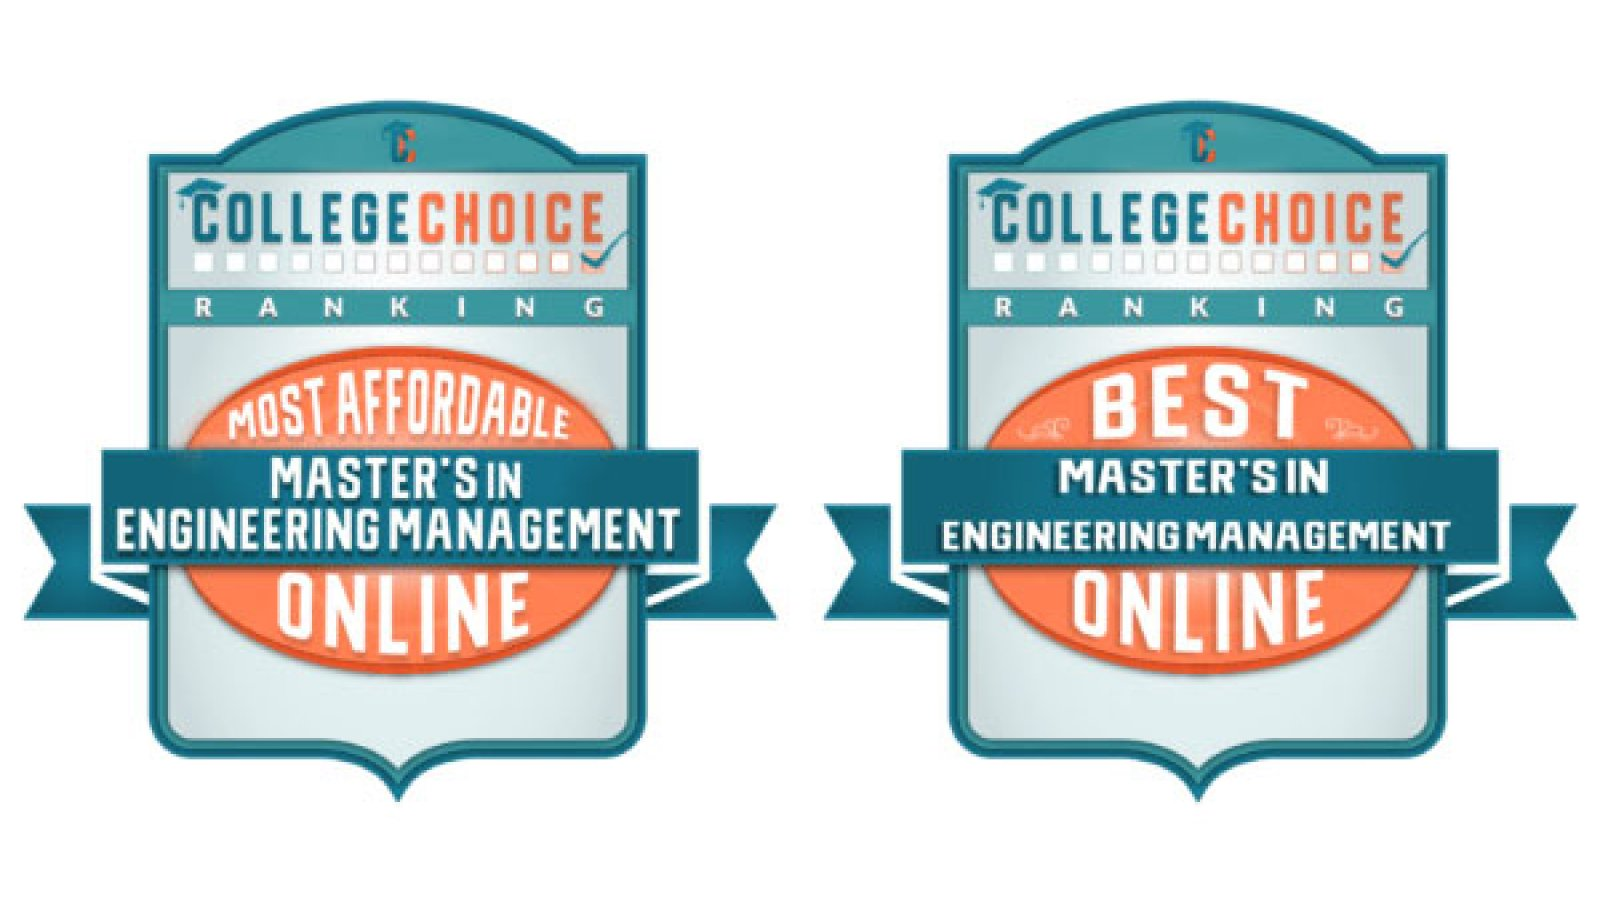 CollegeChoice.net has ranked Nebraska's Master of Engineering Management program in the top 20 in two categories.